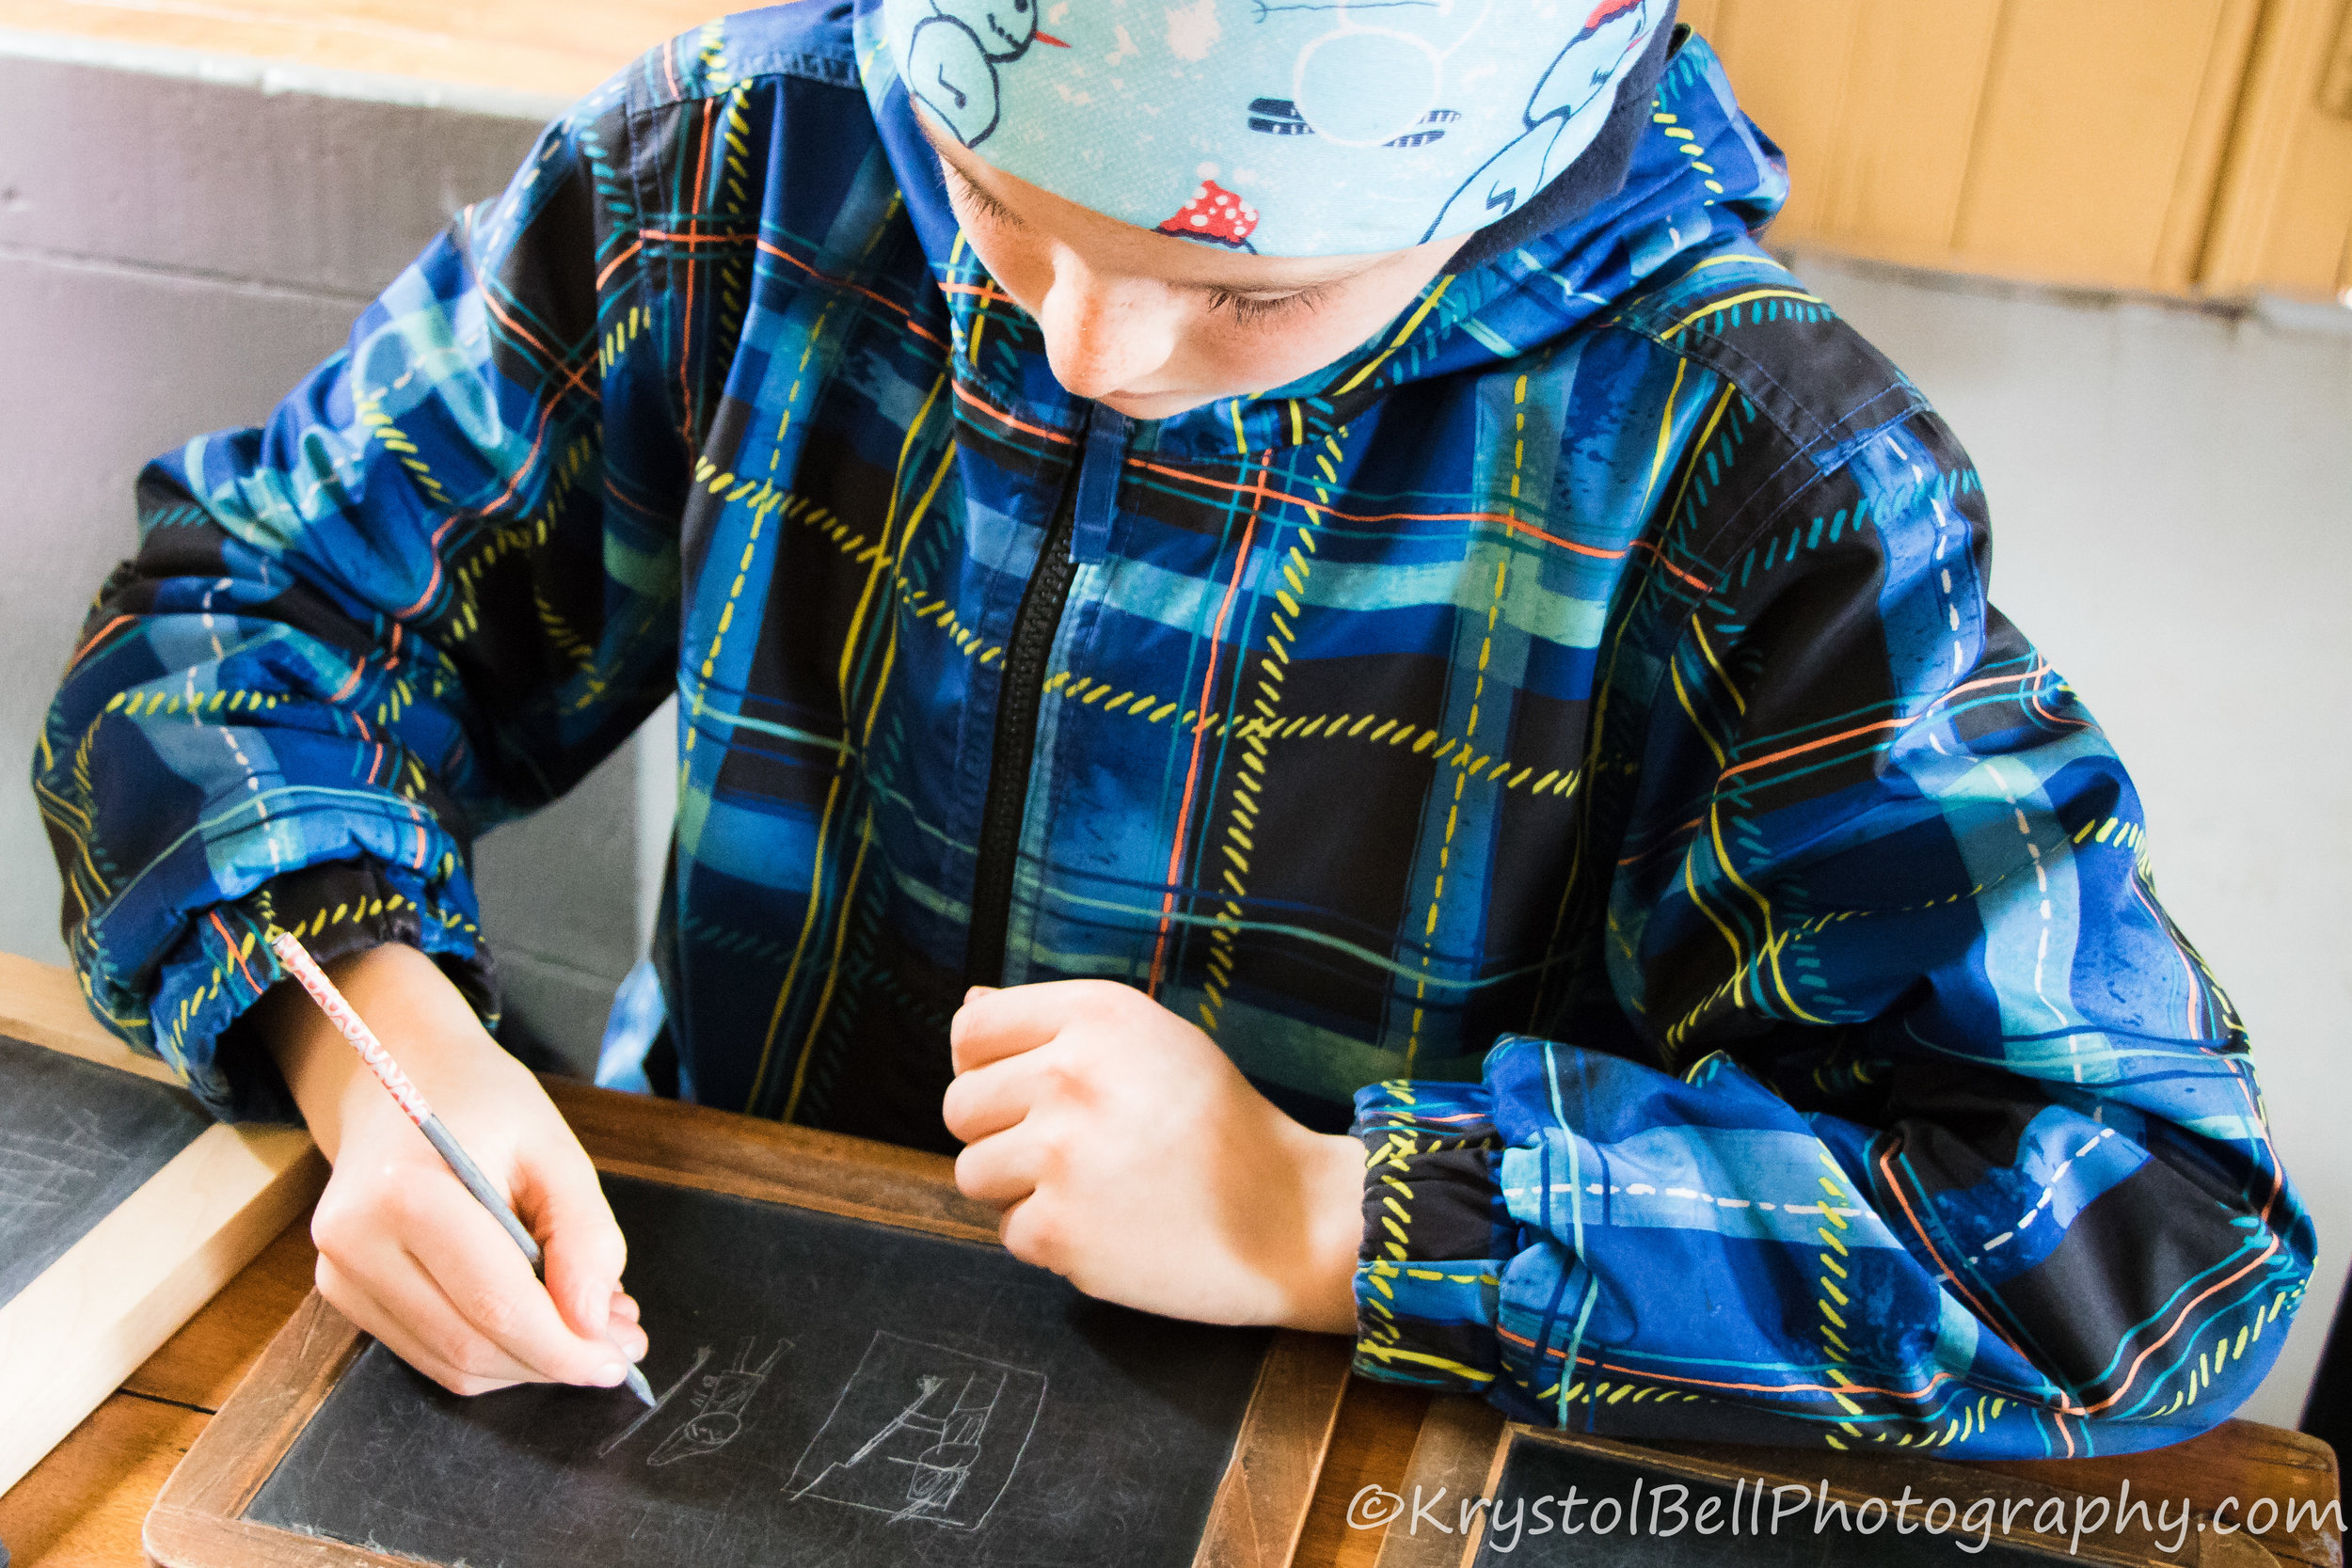 Samuel drawing a scene from the Revolutionary War-I was seriously impressed with his knowledge and drawing on a slate abilities!